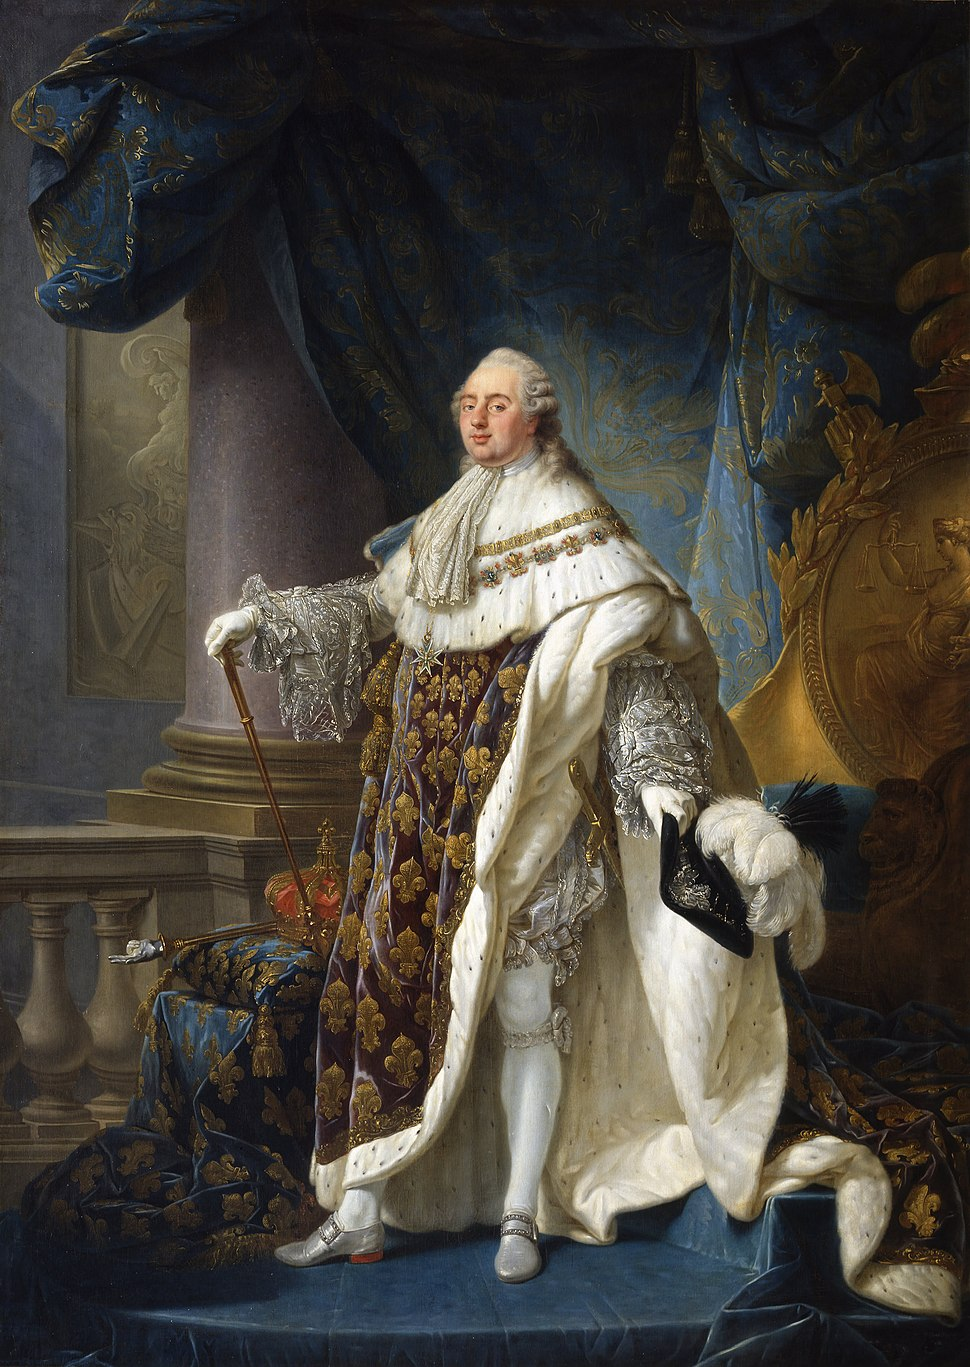 Antoine-Fran%C3%A7ois Callet - Louis XVI, roi de France et de Navarre (1754-1793), rev%C3%AAtu du grand costume royal en 1779 - Google Art Project.jpg